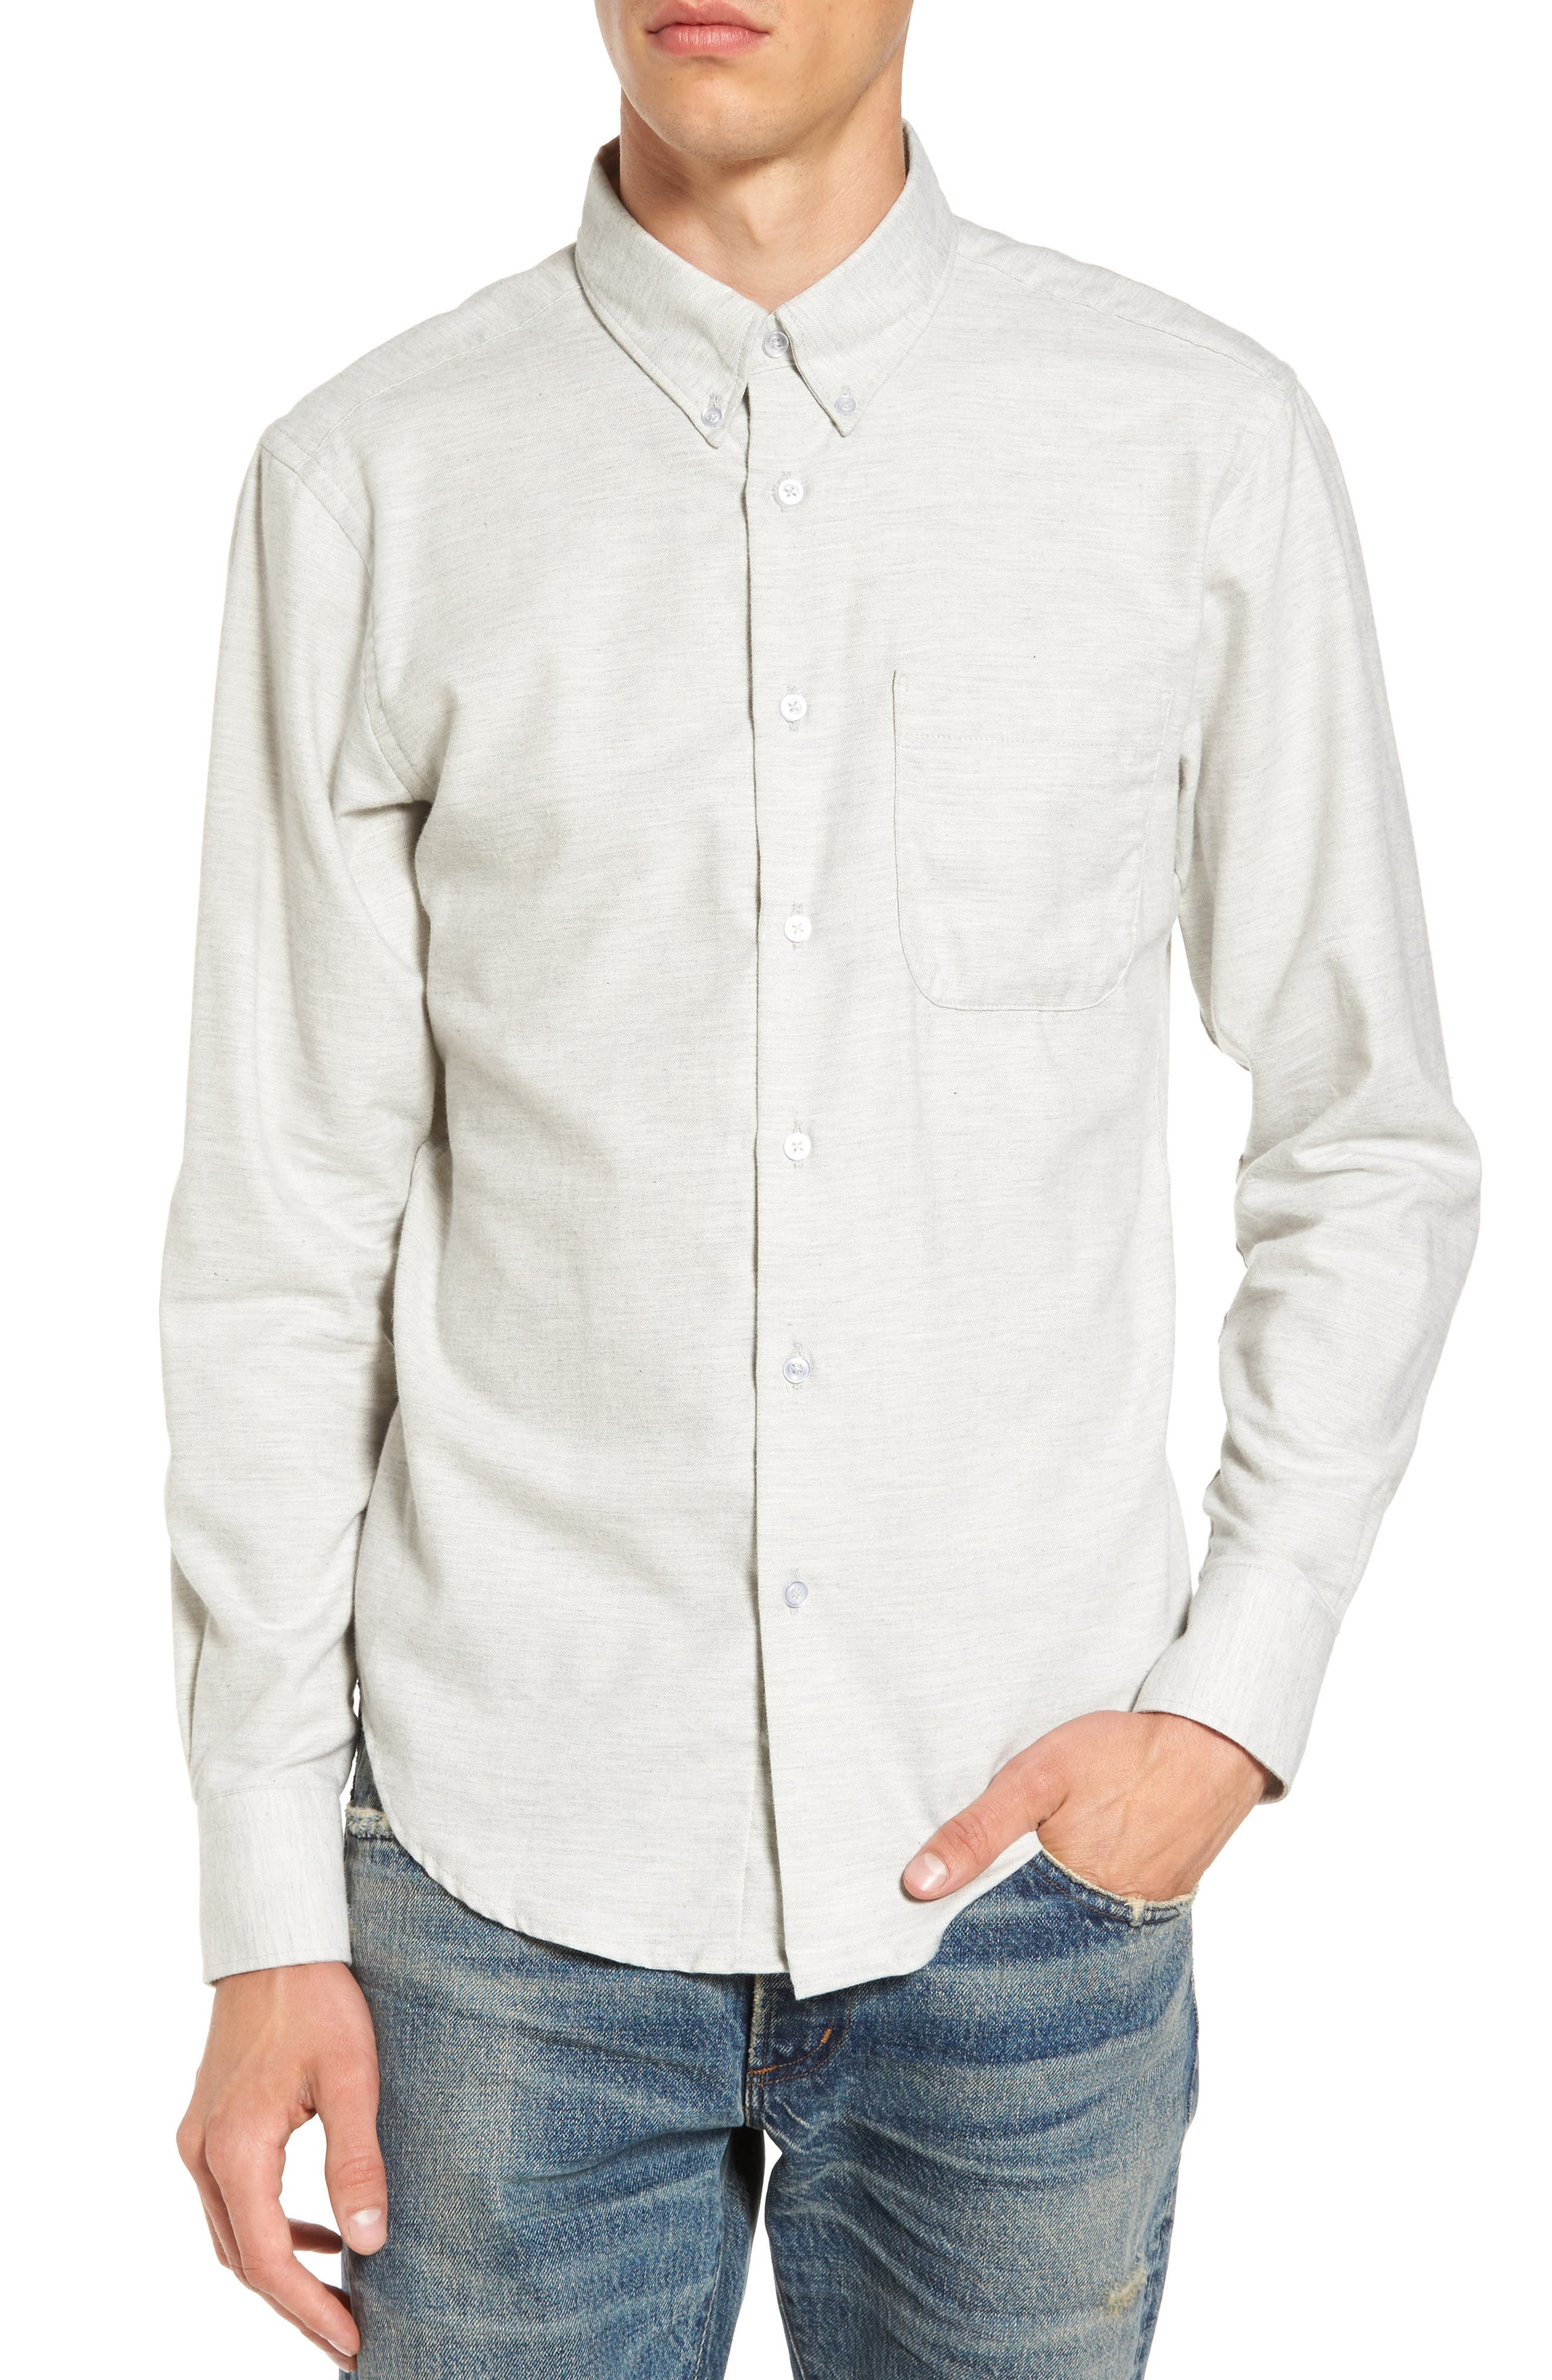 Alternate Image 1 Selected - Naked & Famous Denim Twill Woven Shirt